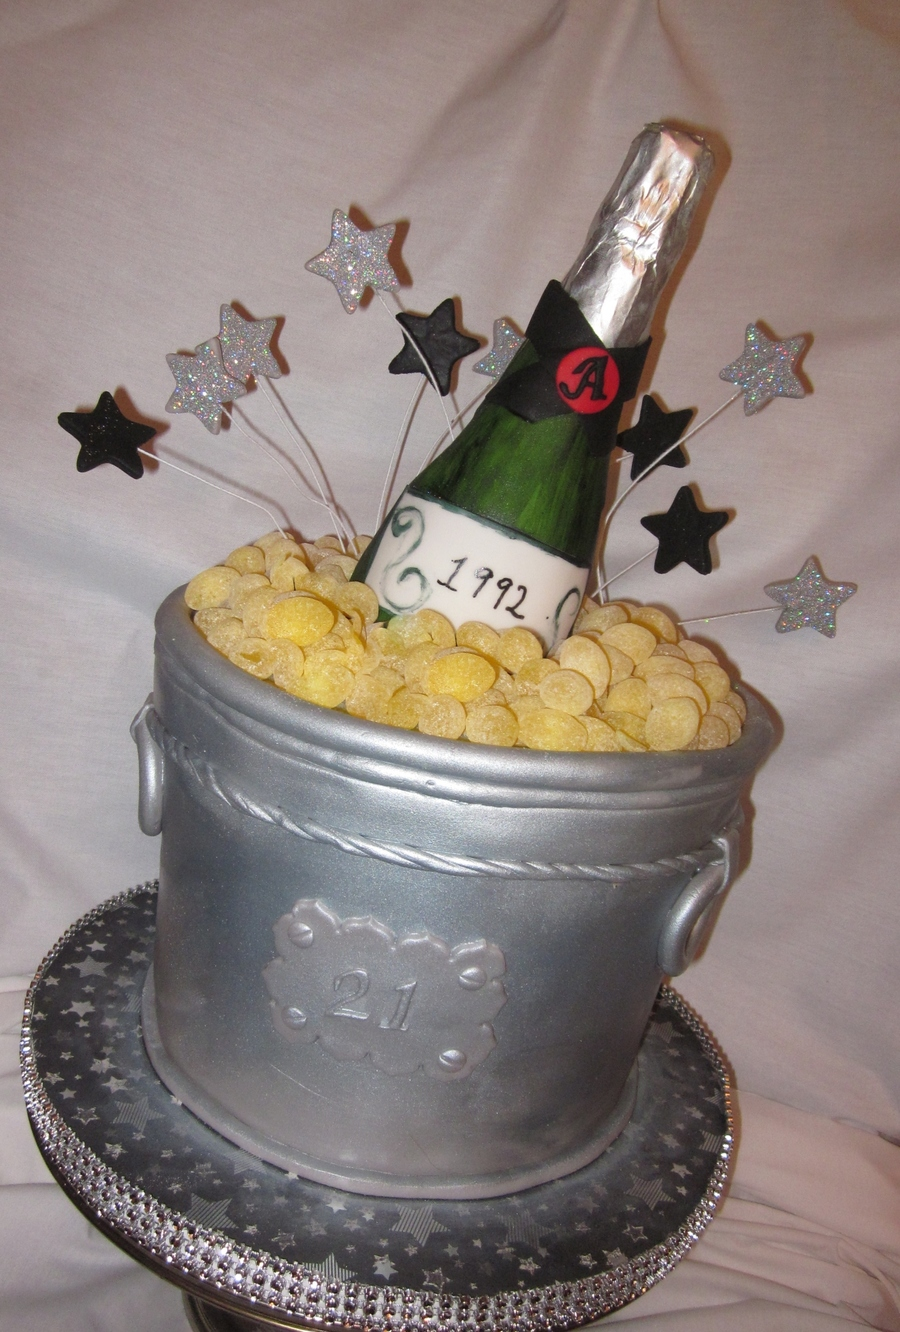 Images Of Birthday Cake And Champagne : 21St Birthday Cake Ice Bucket Is Cake The Champagne Bottle ...